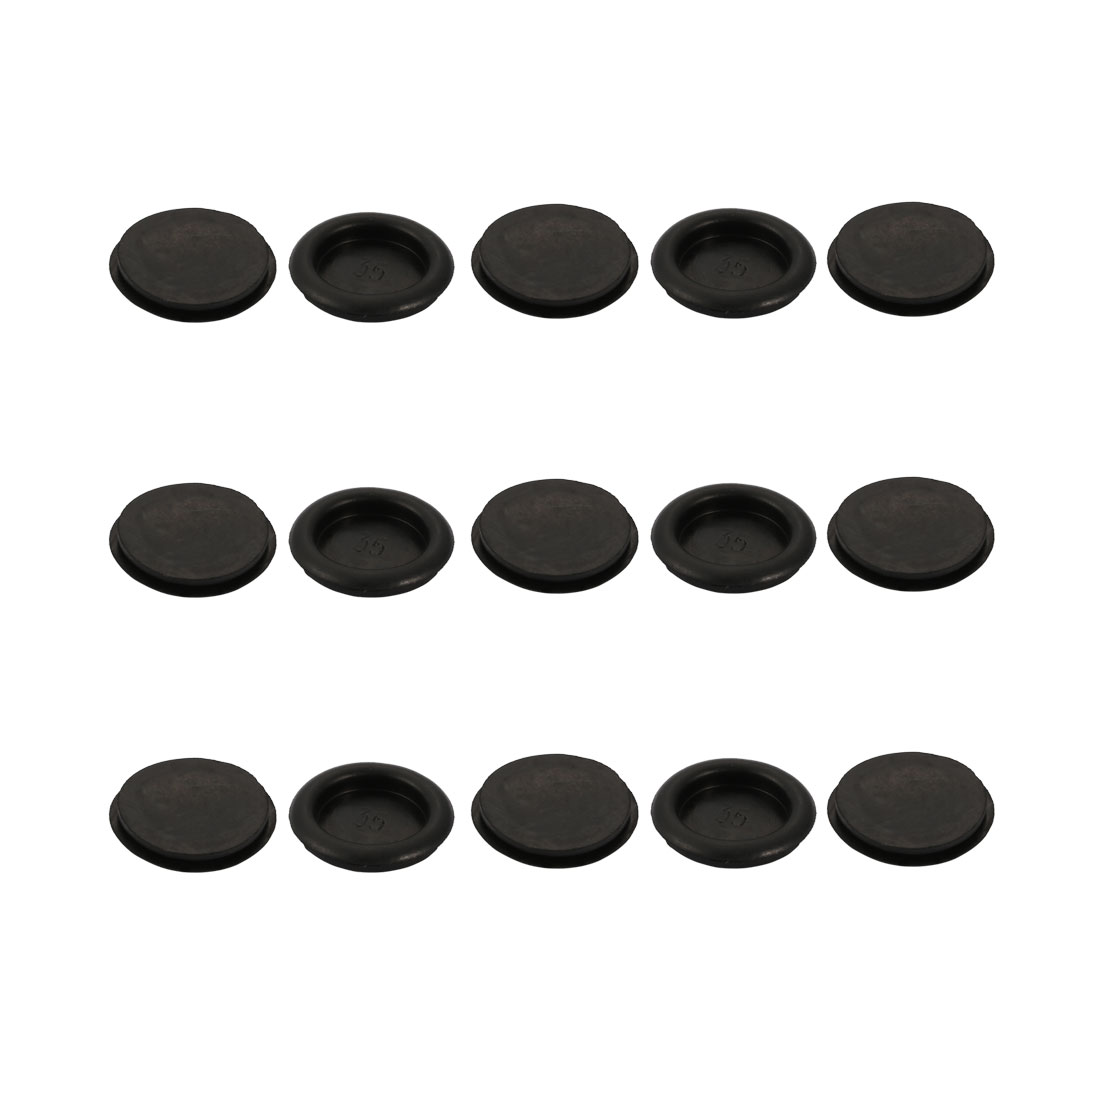 15pcs Wire Protective Grommets Black Rubber 35mm Dia Single Side Grommets